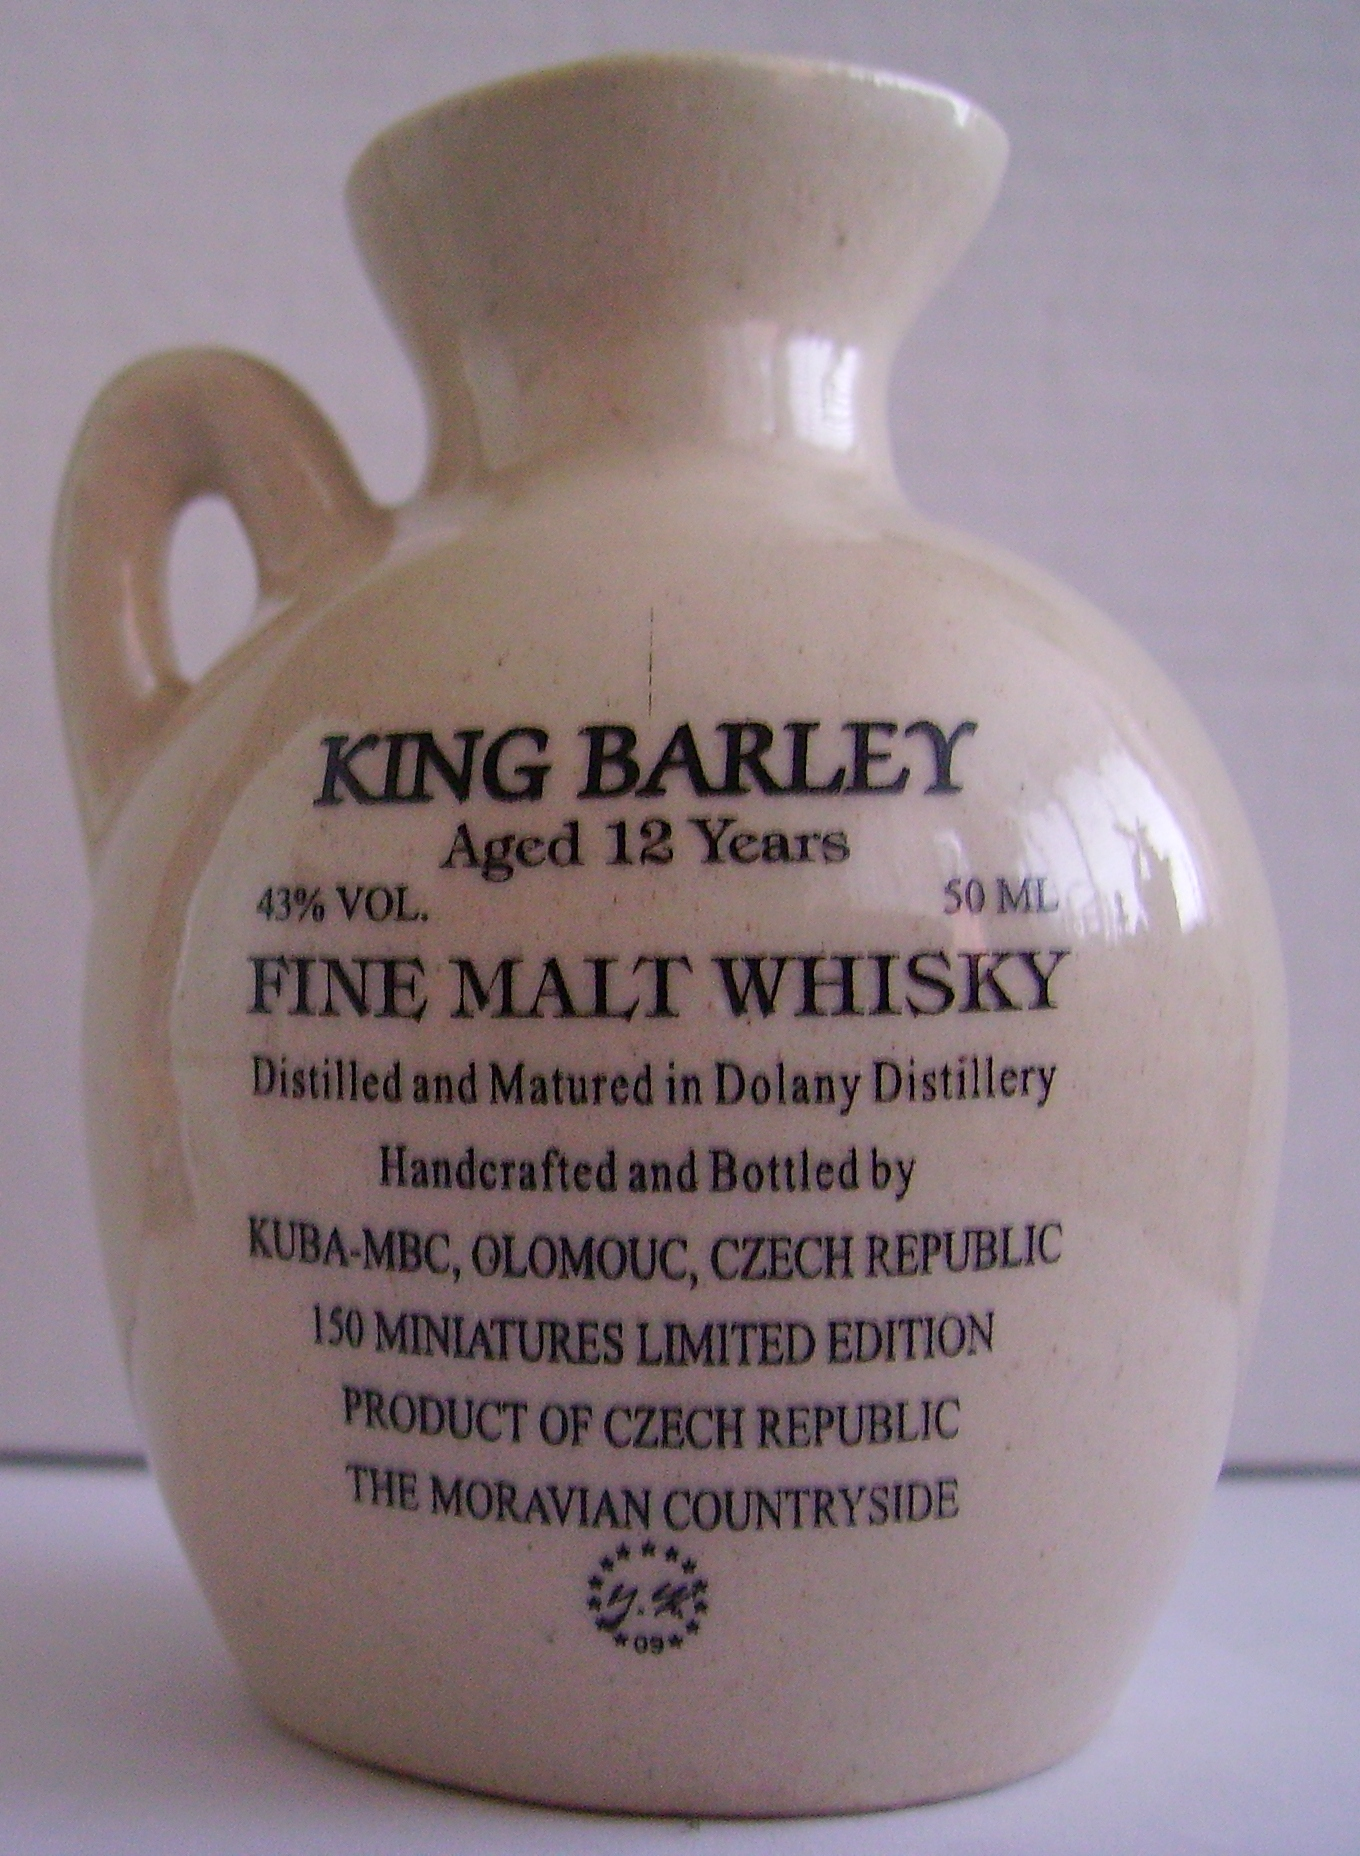 30th Anniversary Midwest Miniature Bottle Club Jug – Back side